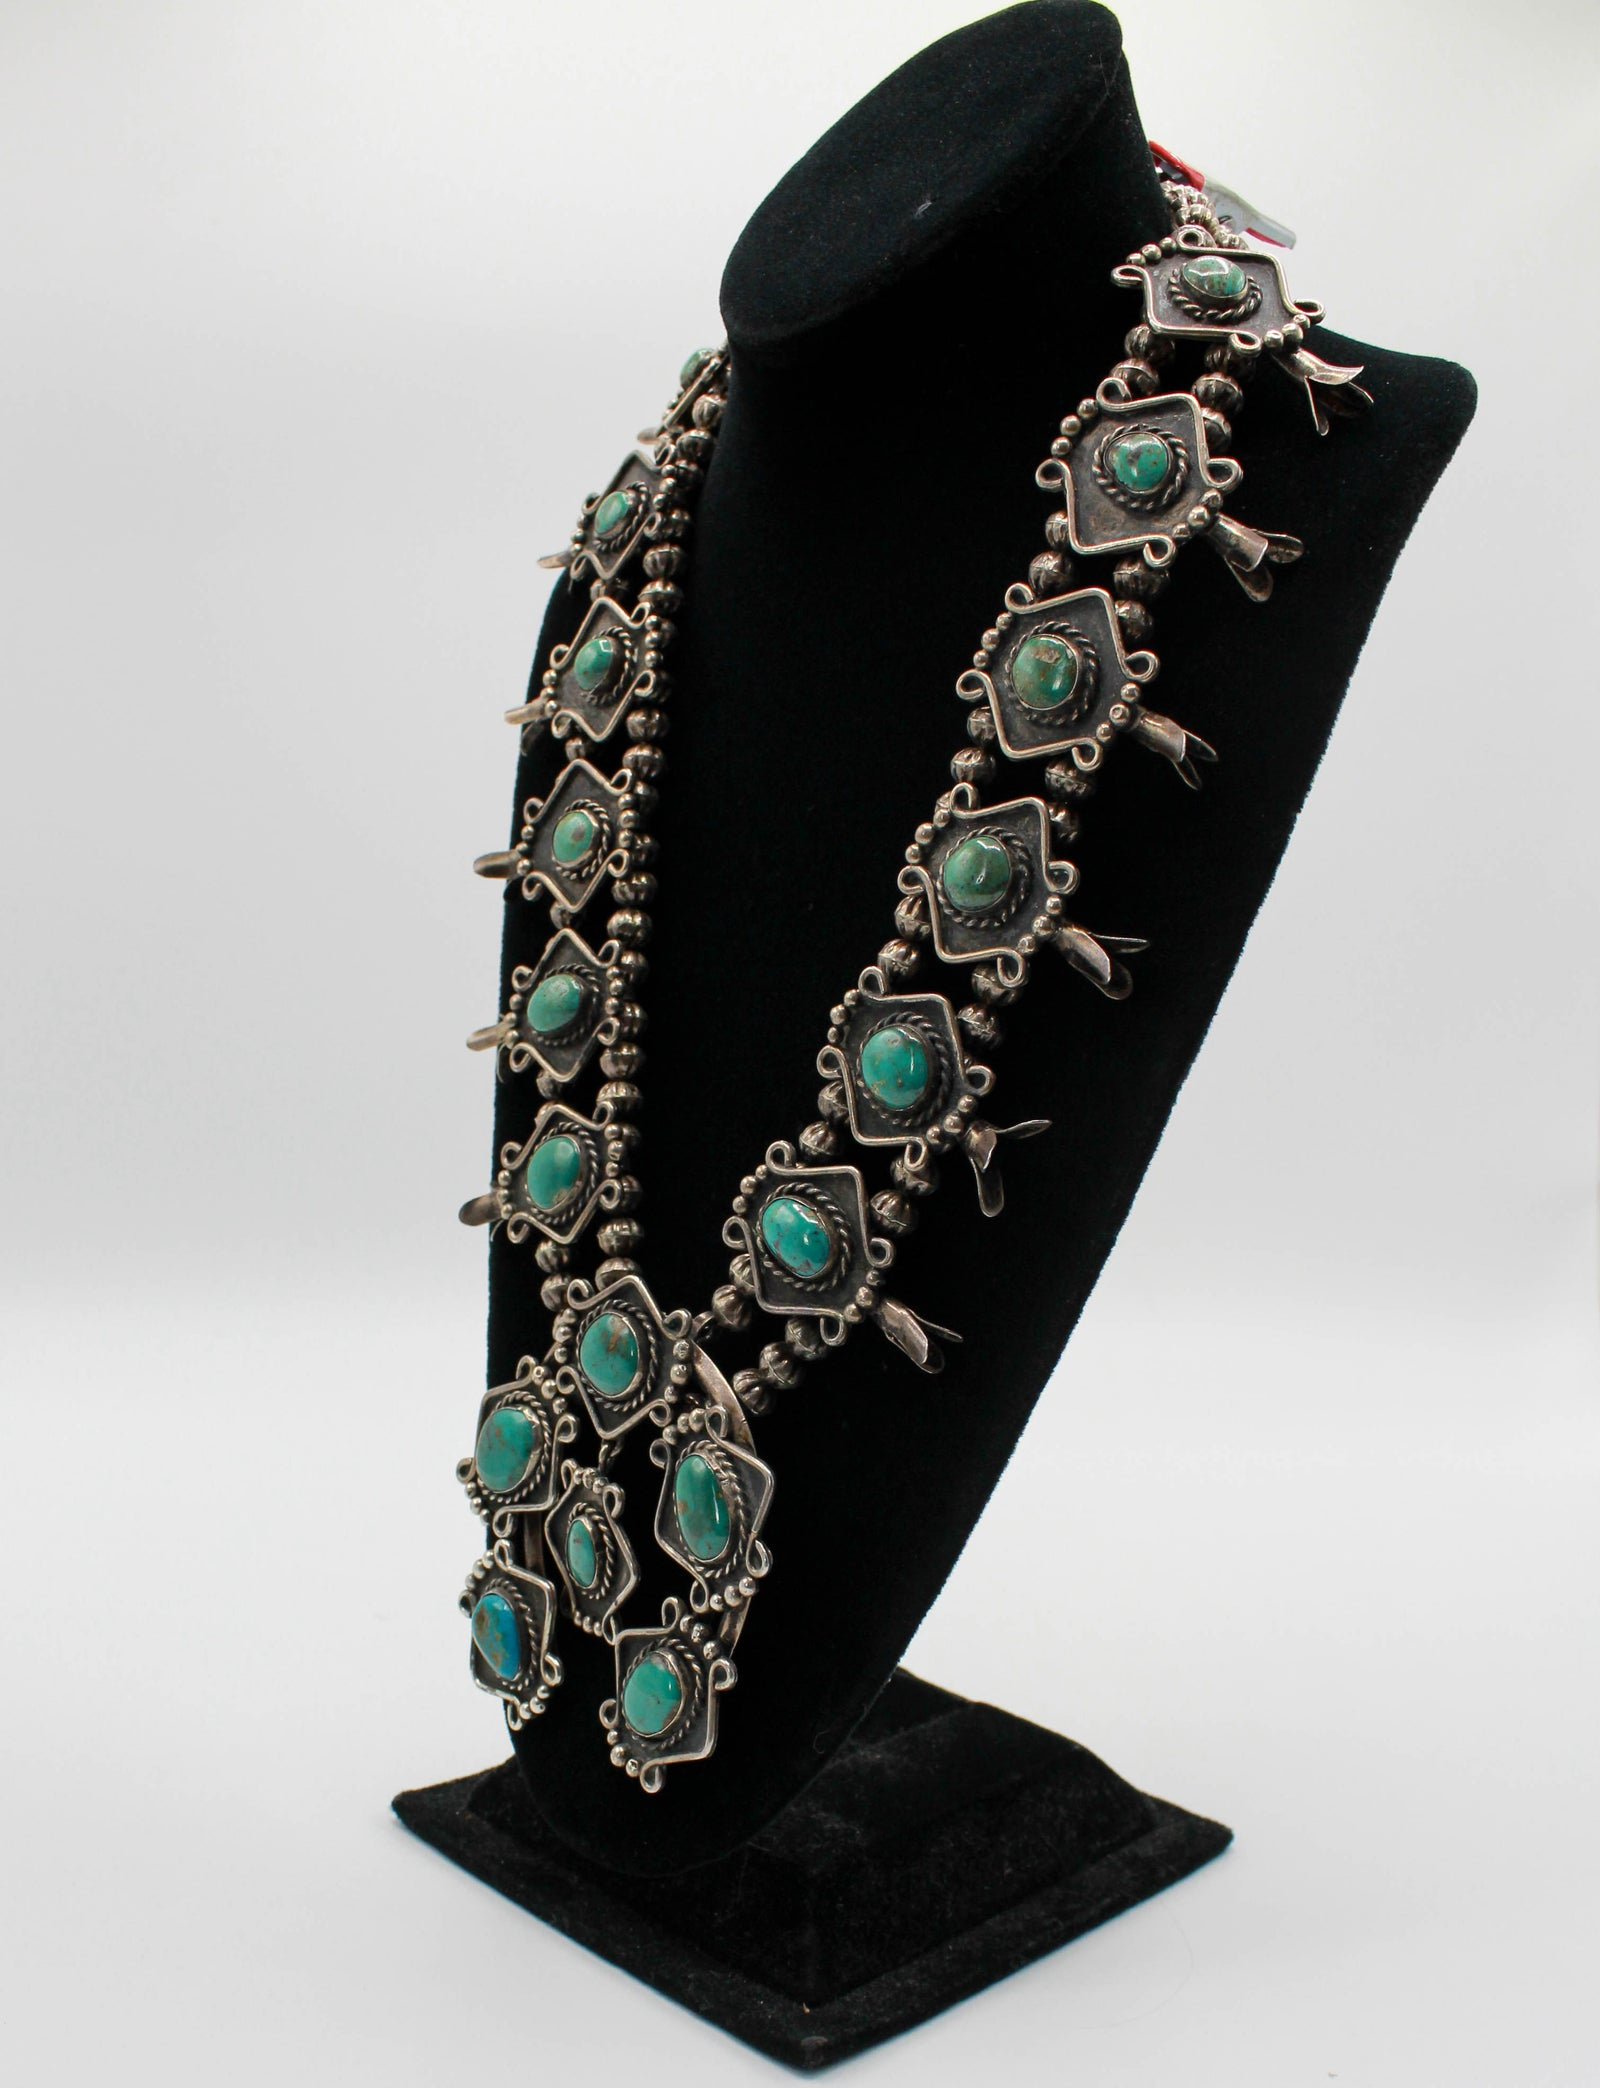 Vintage 40's Navajo Squash Blossom Necklace King's Manassa Turquoise Sterling Silver